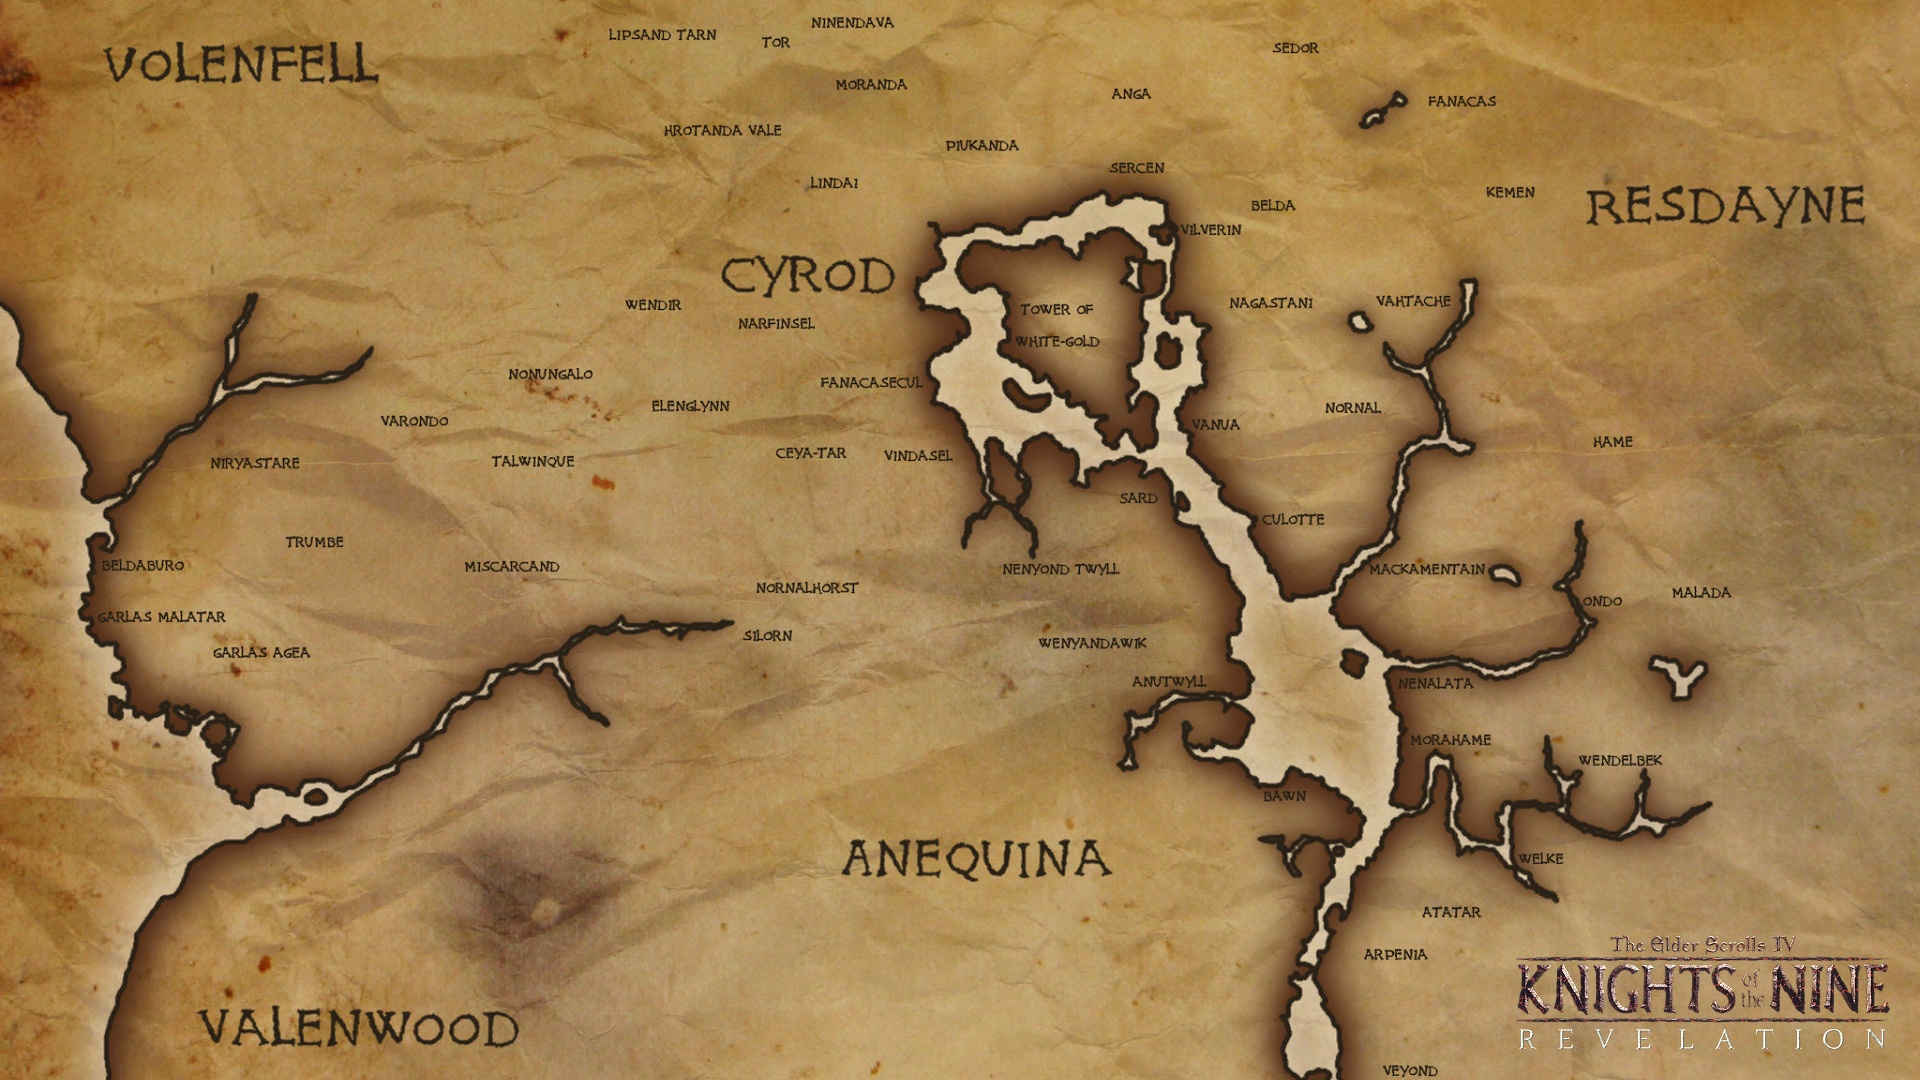 Knights of the Nine Revelation - Cyrod Map at Oblivion Nexus ... on full skyrim map, full map of fallout new vegas, elder scrolls oblivion, full map of gta 4, full oblivion caves map map,